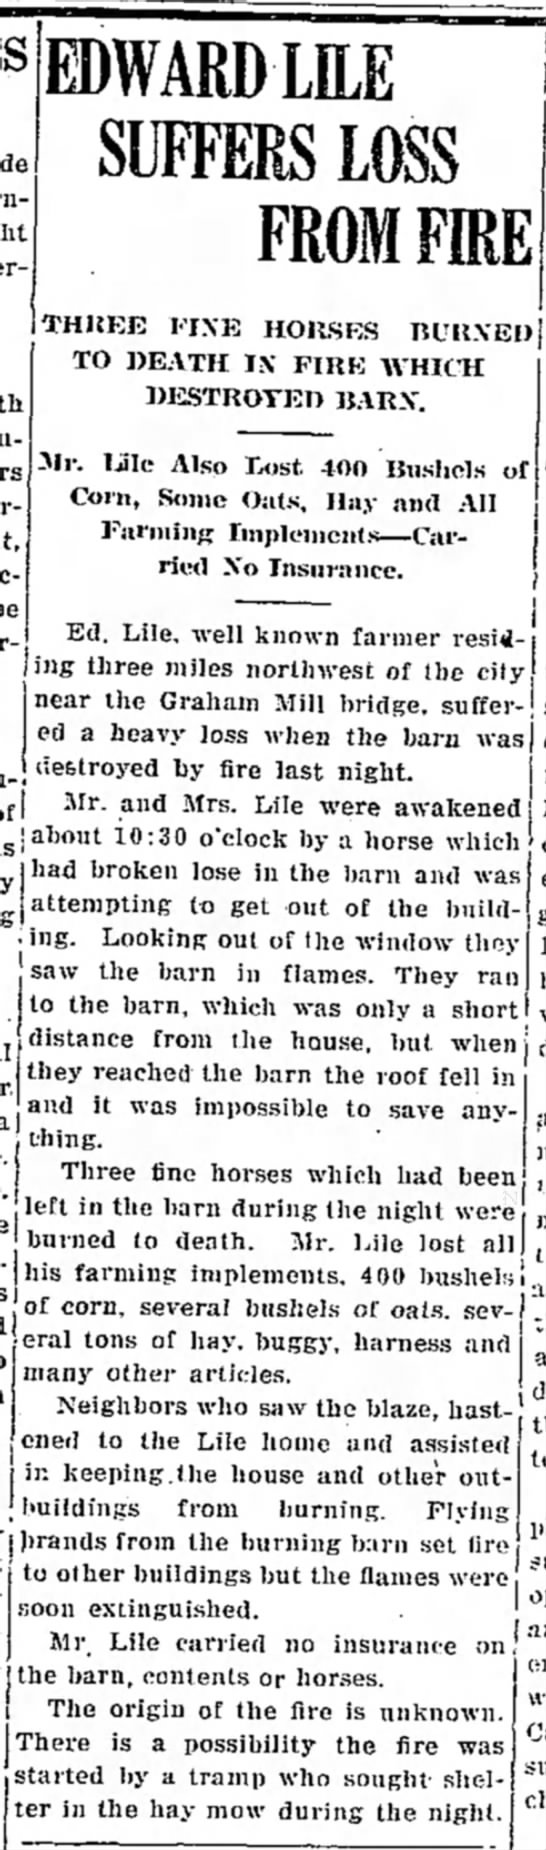 Edward Lile/Chillicothion Tribune, Chillicothe, MO 26 Mar 1927 - be| EDWARD LILE SUFFERS LOSS FROM FIRE THREE...